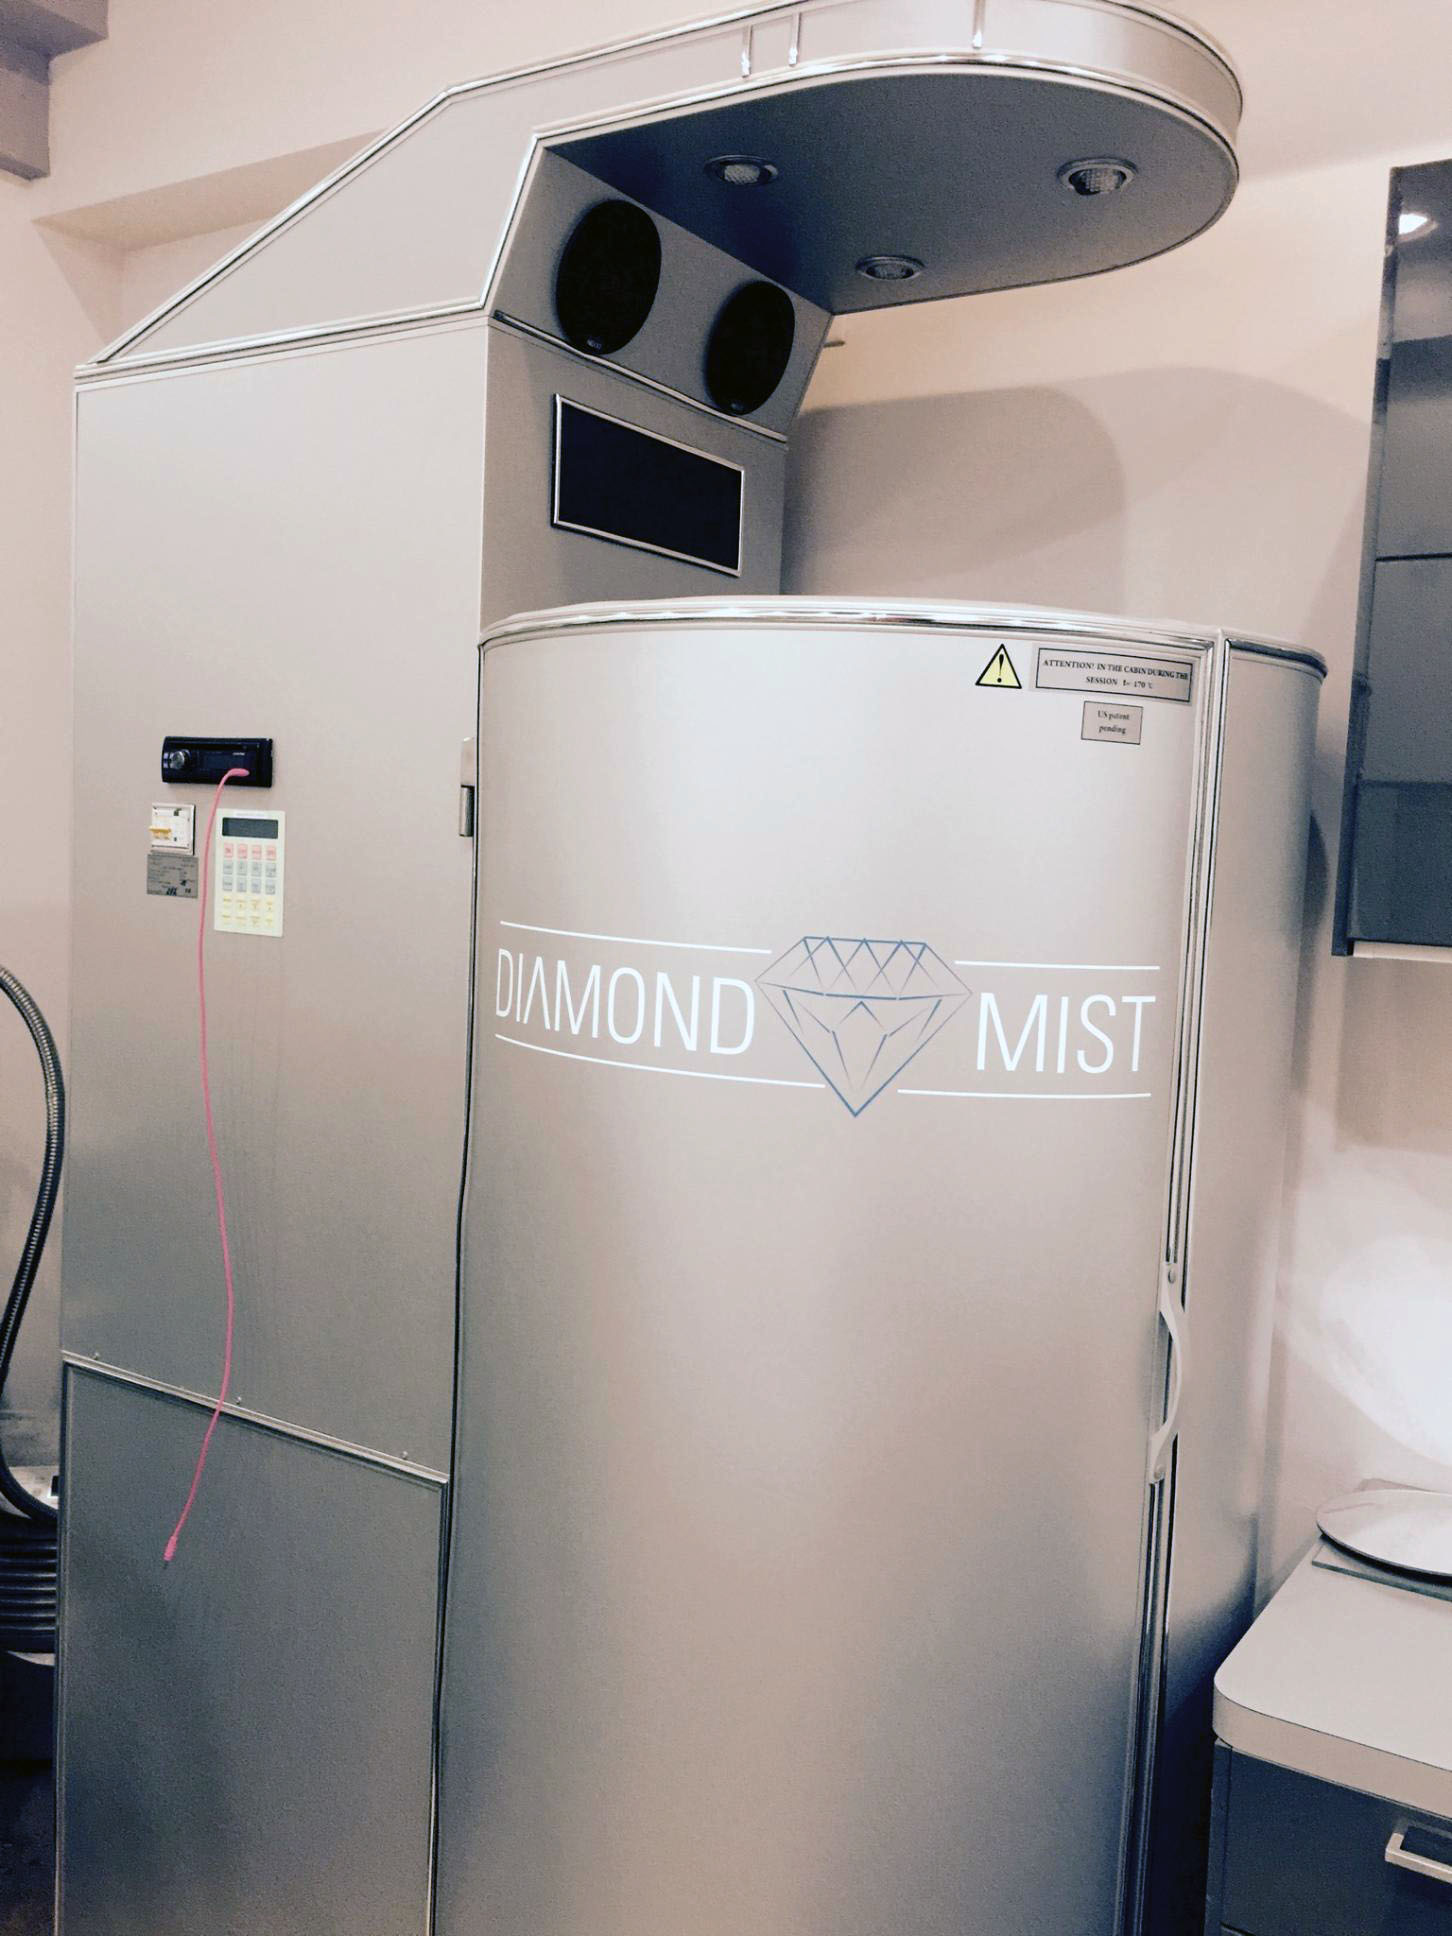 The Diamond Mist cryotherapy chamber provides athletes and others with multiple benefits